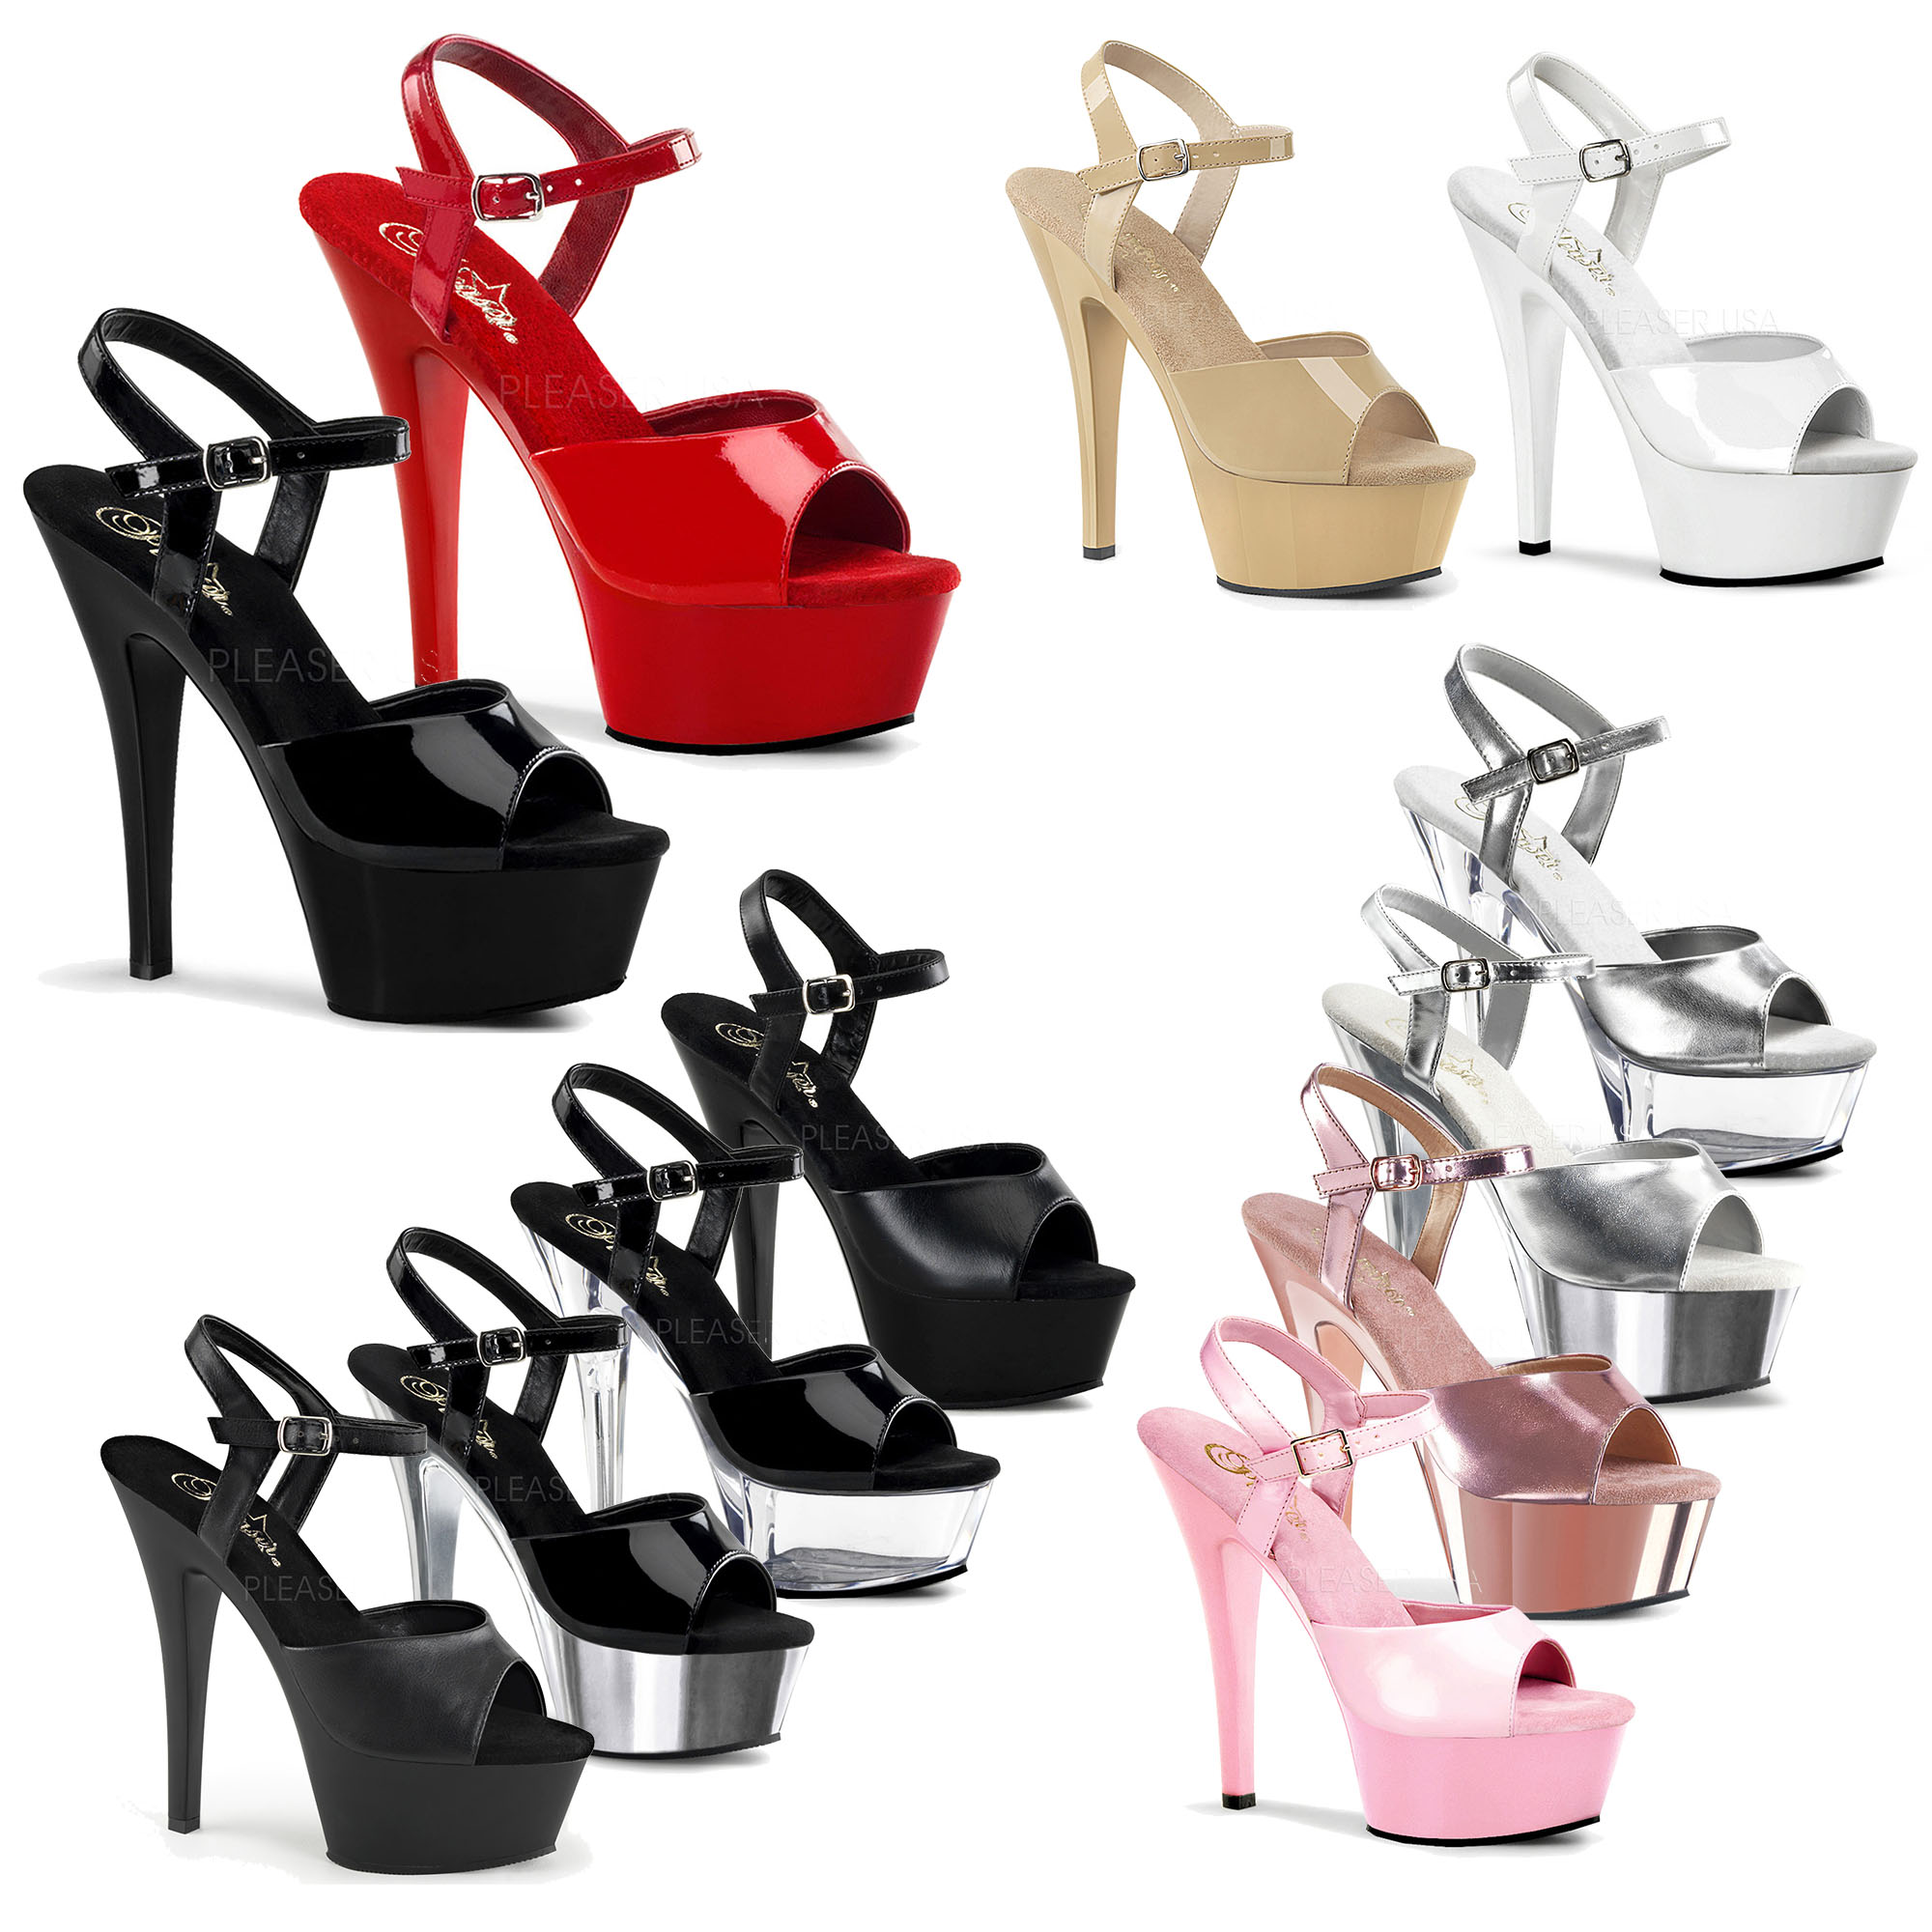 eb2370decb86 Details about PLEASER - Kiss-209 Sexy Ankle Strap Platform Sandal Shoes